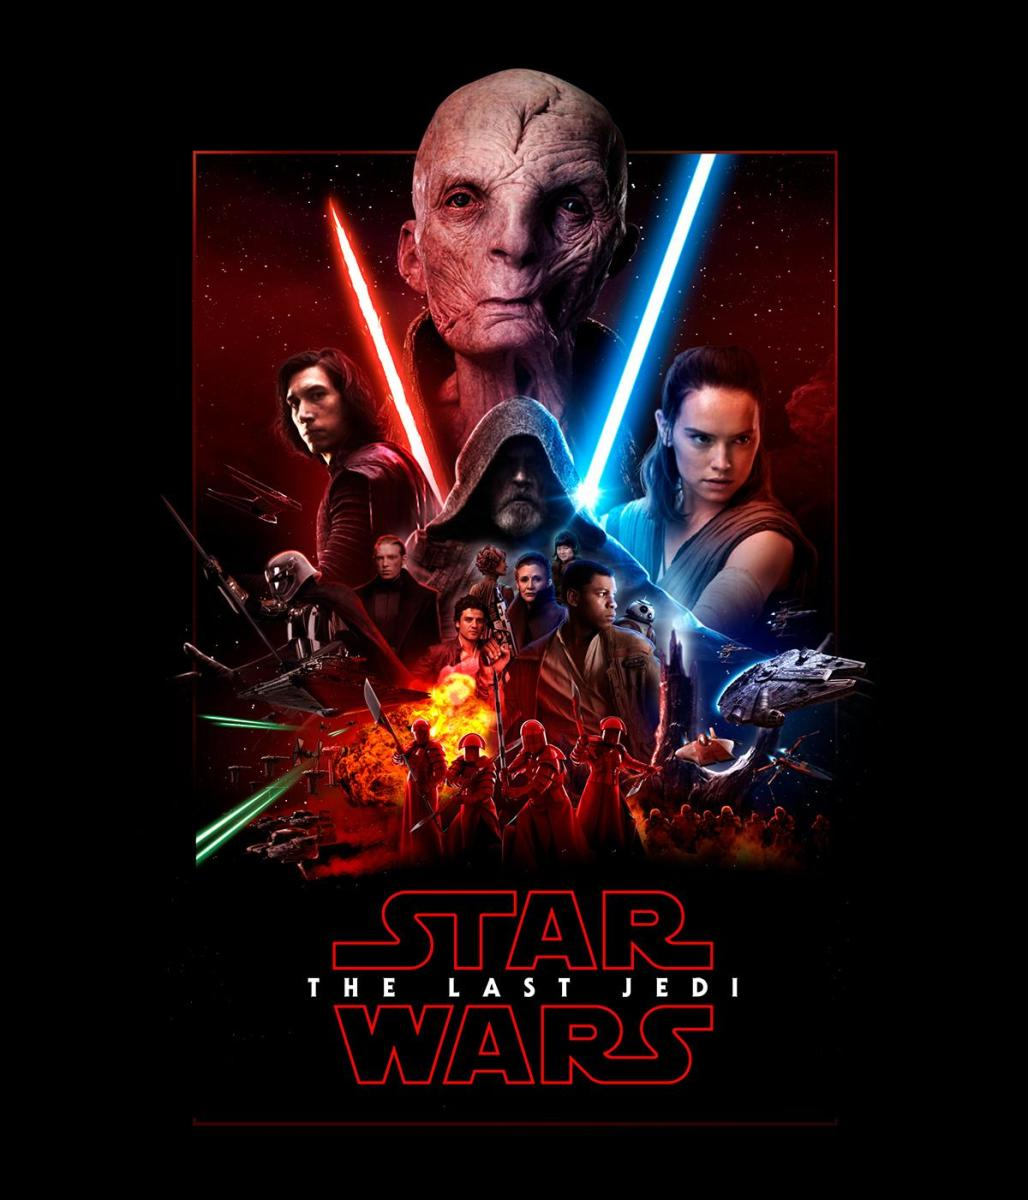 Movie Discussion: Star Wars Episode 8 The Last Jedi